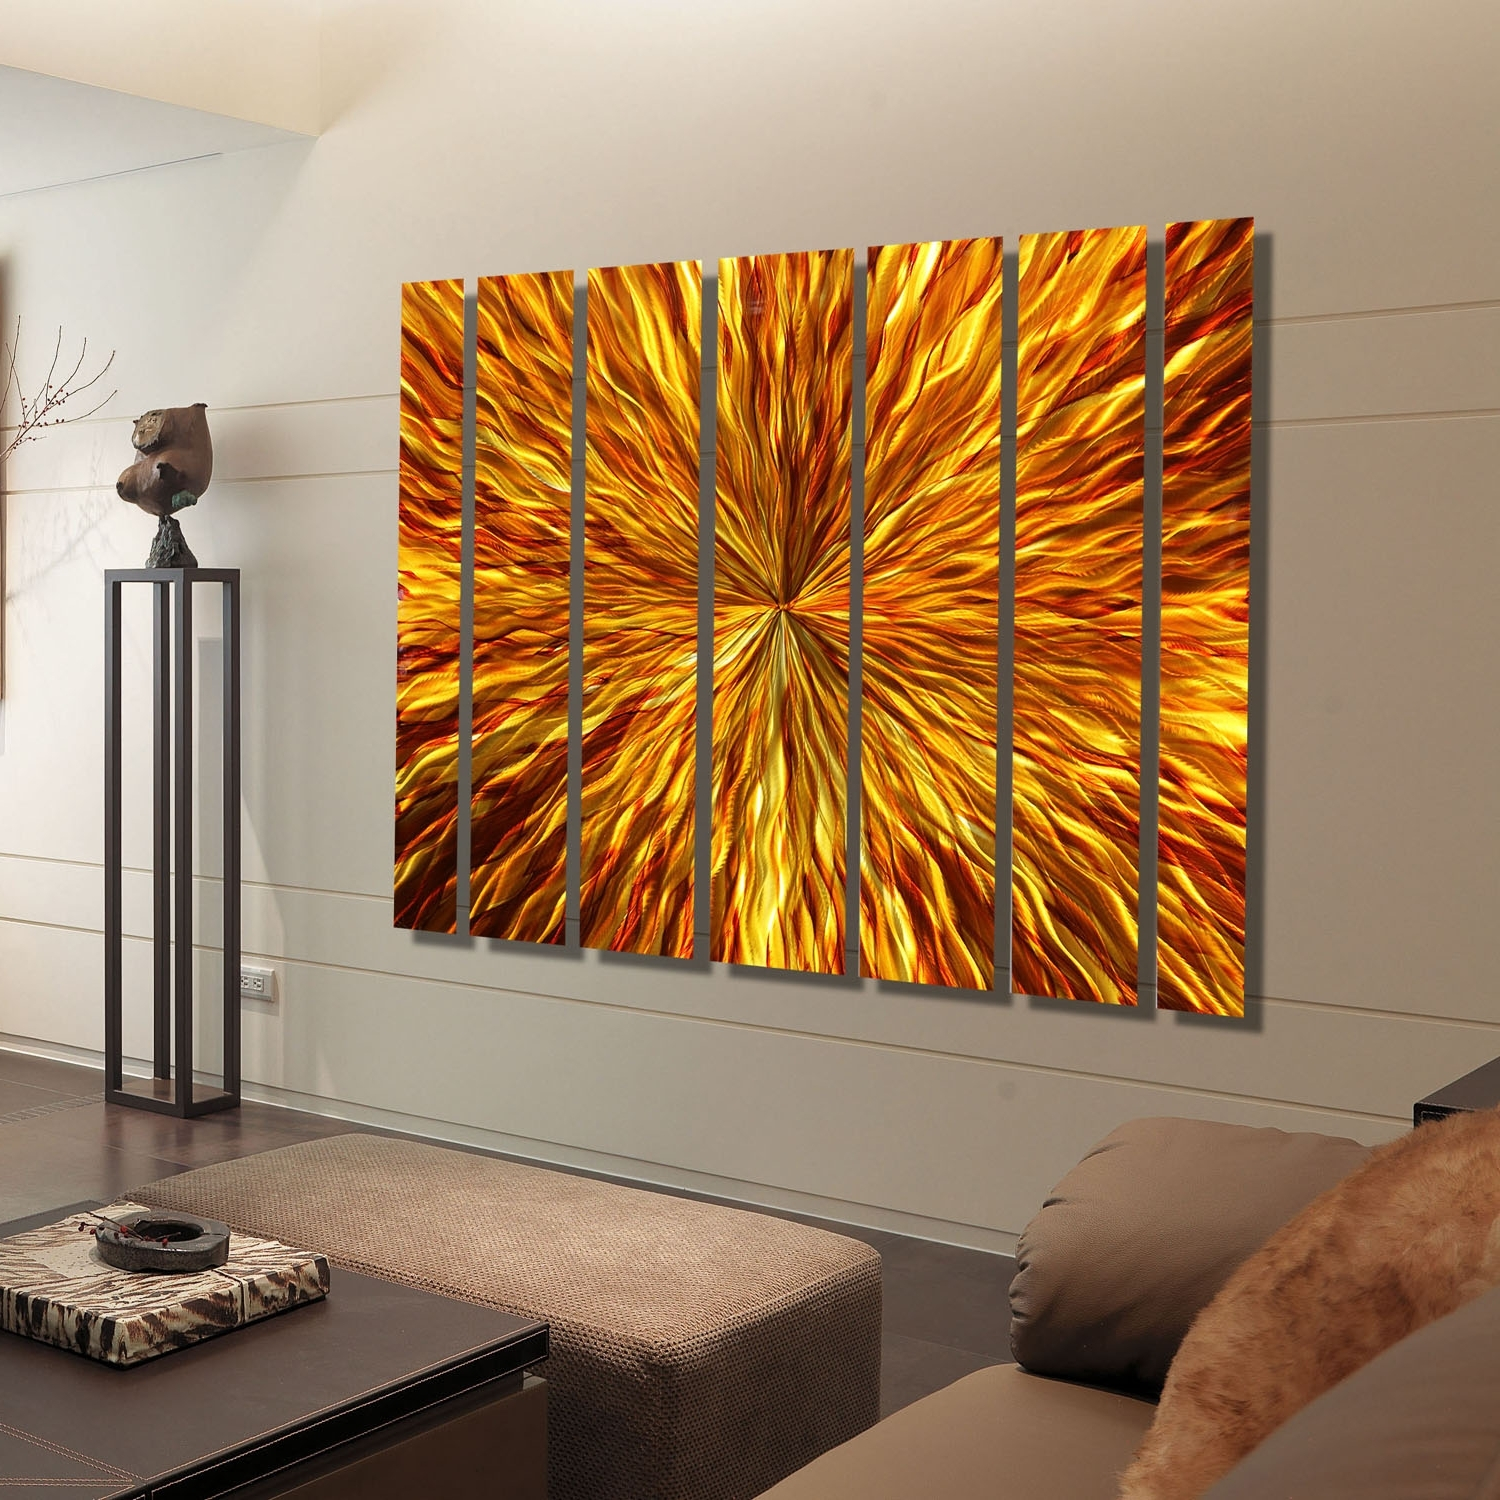 Rectangular Wall Accents Regarding Most Recently Released Amber Vortex Xl – Extra Large Modern Metal Wall Artjon Allen (View 12 of 15)